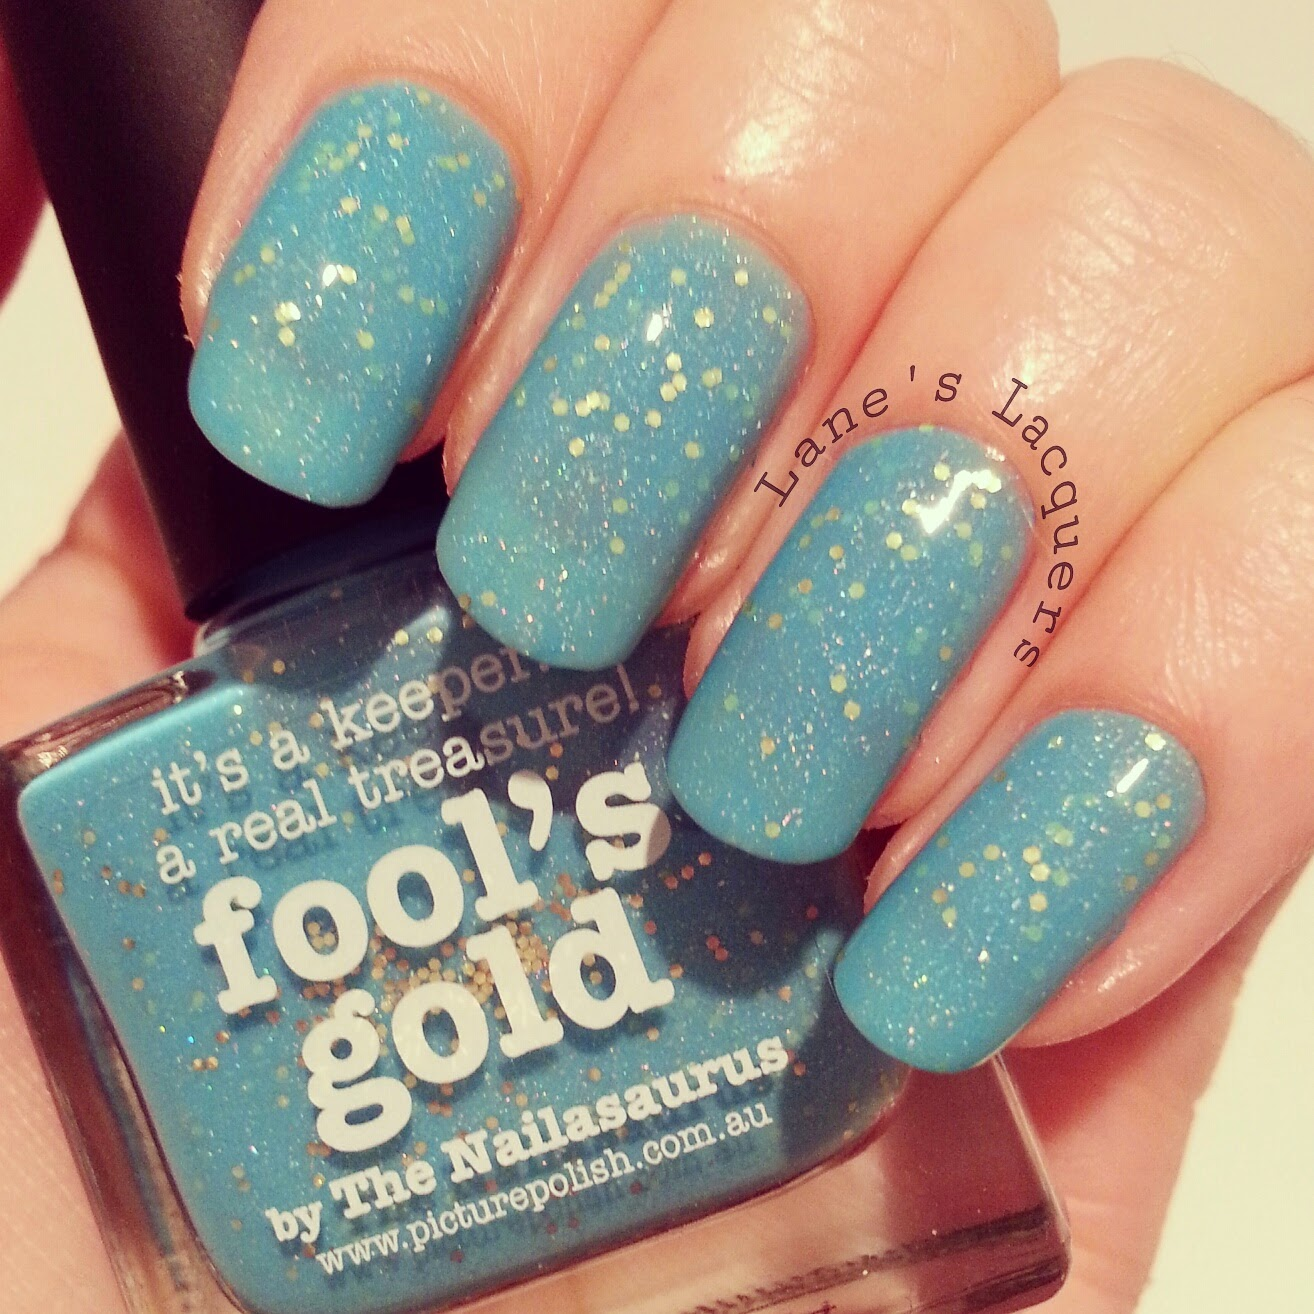 new-picture-polish-fools-gold-swatch-manicure (2)